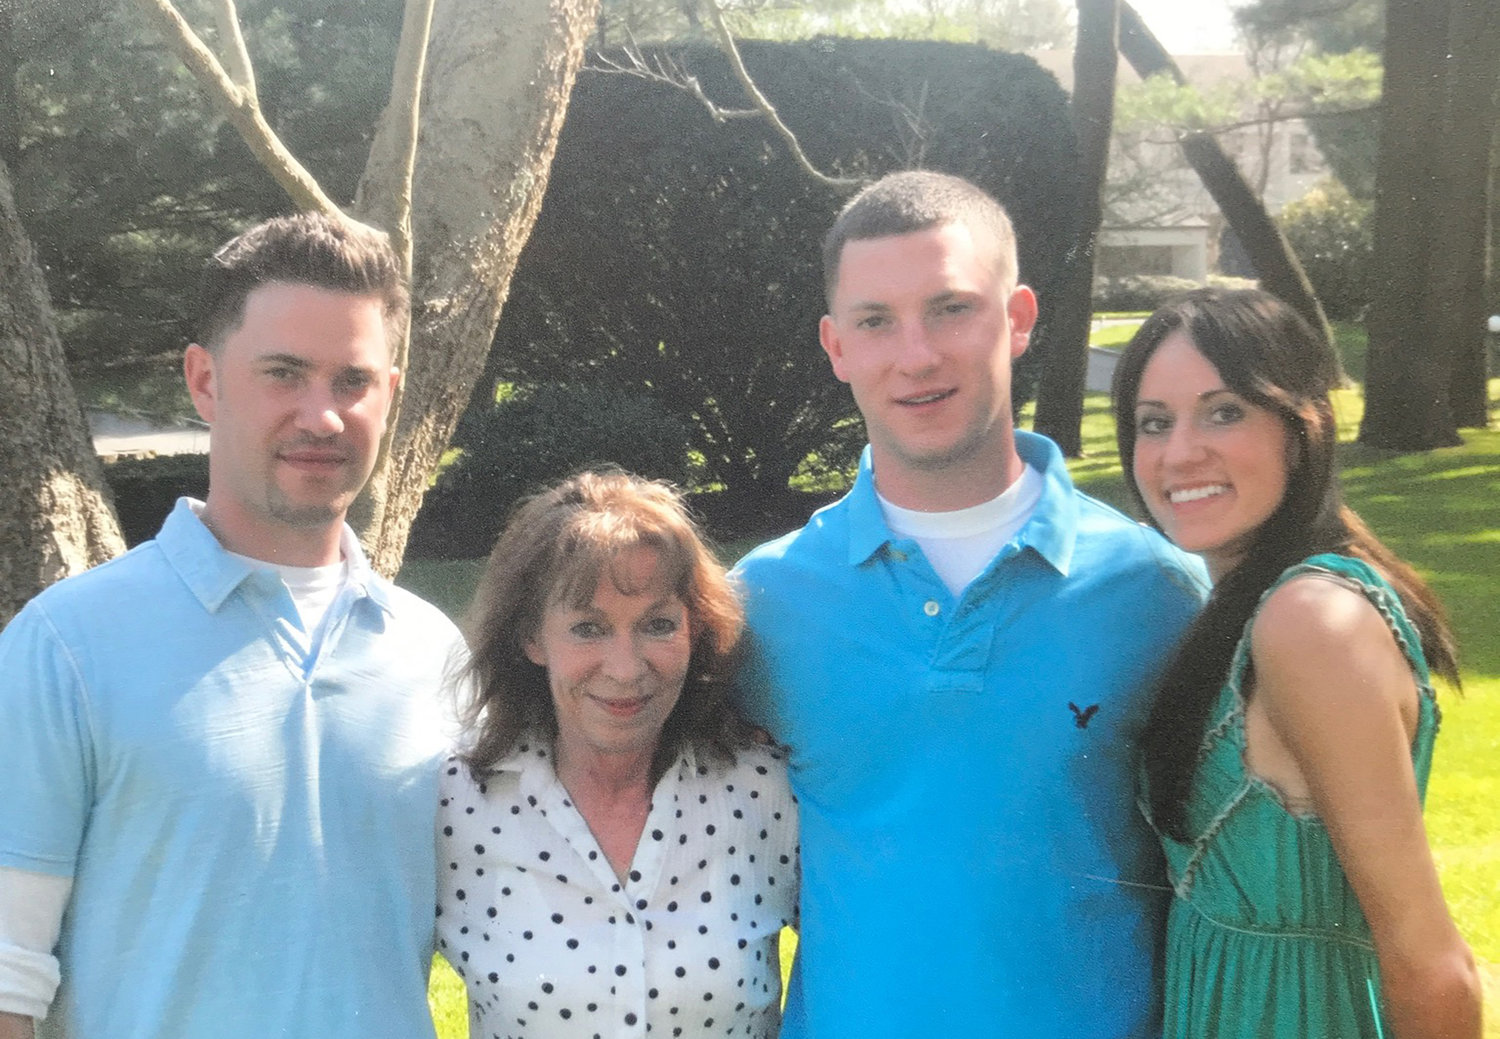 Greg Karris, far left, with his mother, Margaret Karris, his brother, Peter, and his sister, Cassandra Ottaviano.